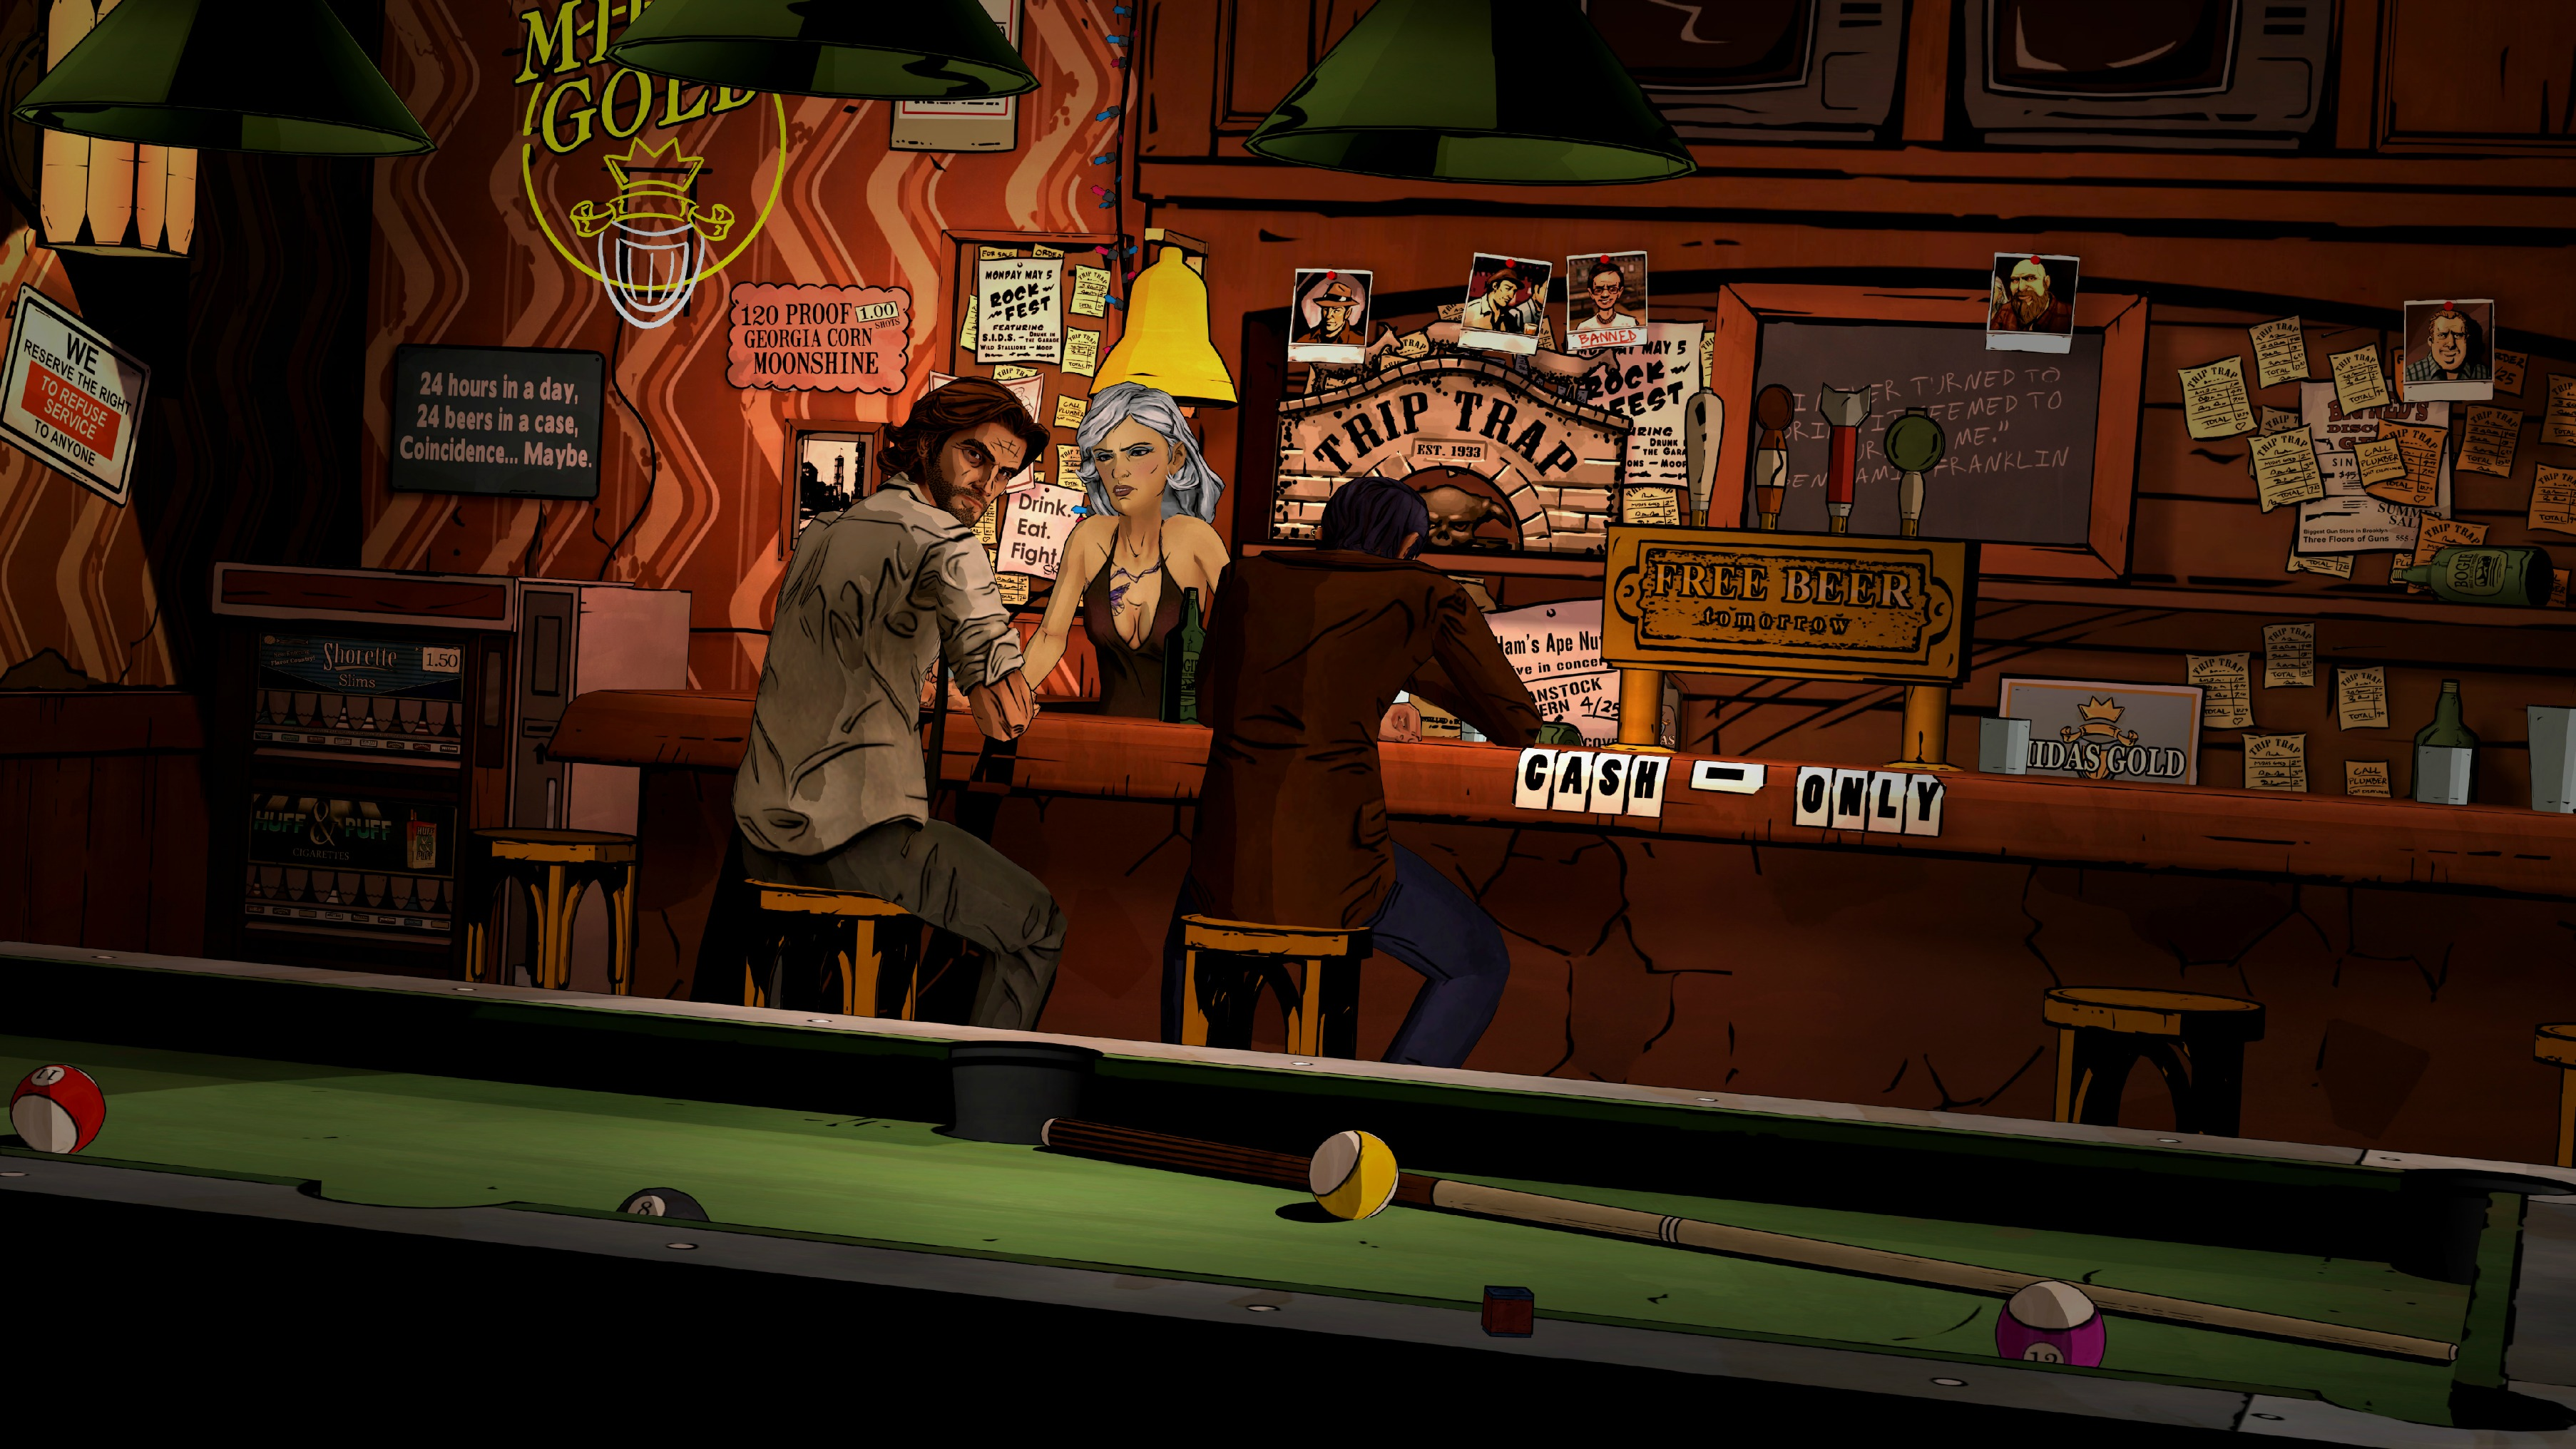 The wolf among us game bar d wallpaper 3612x2032 for Lounge wallpaper